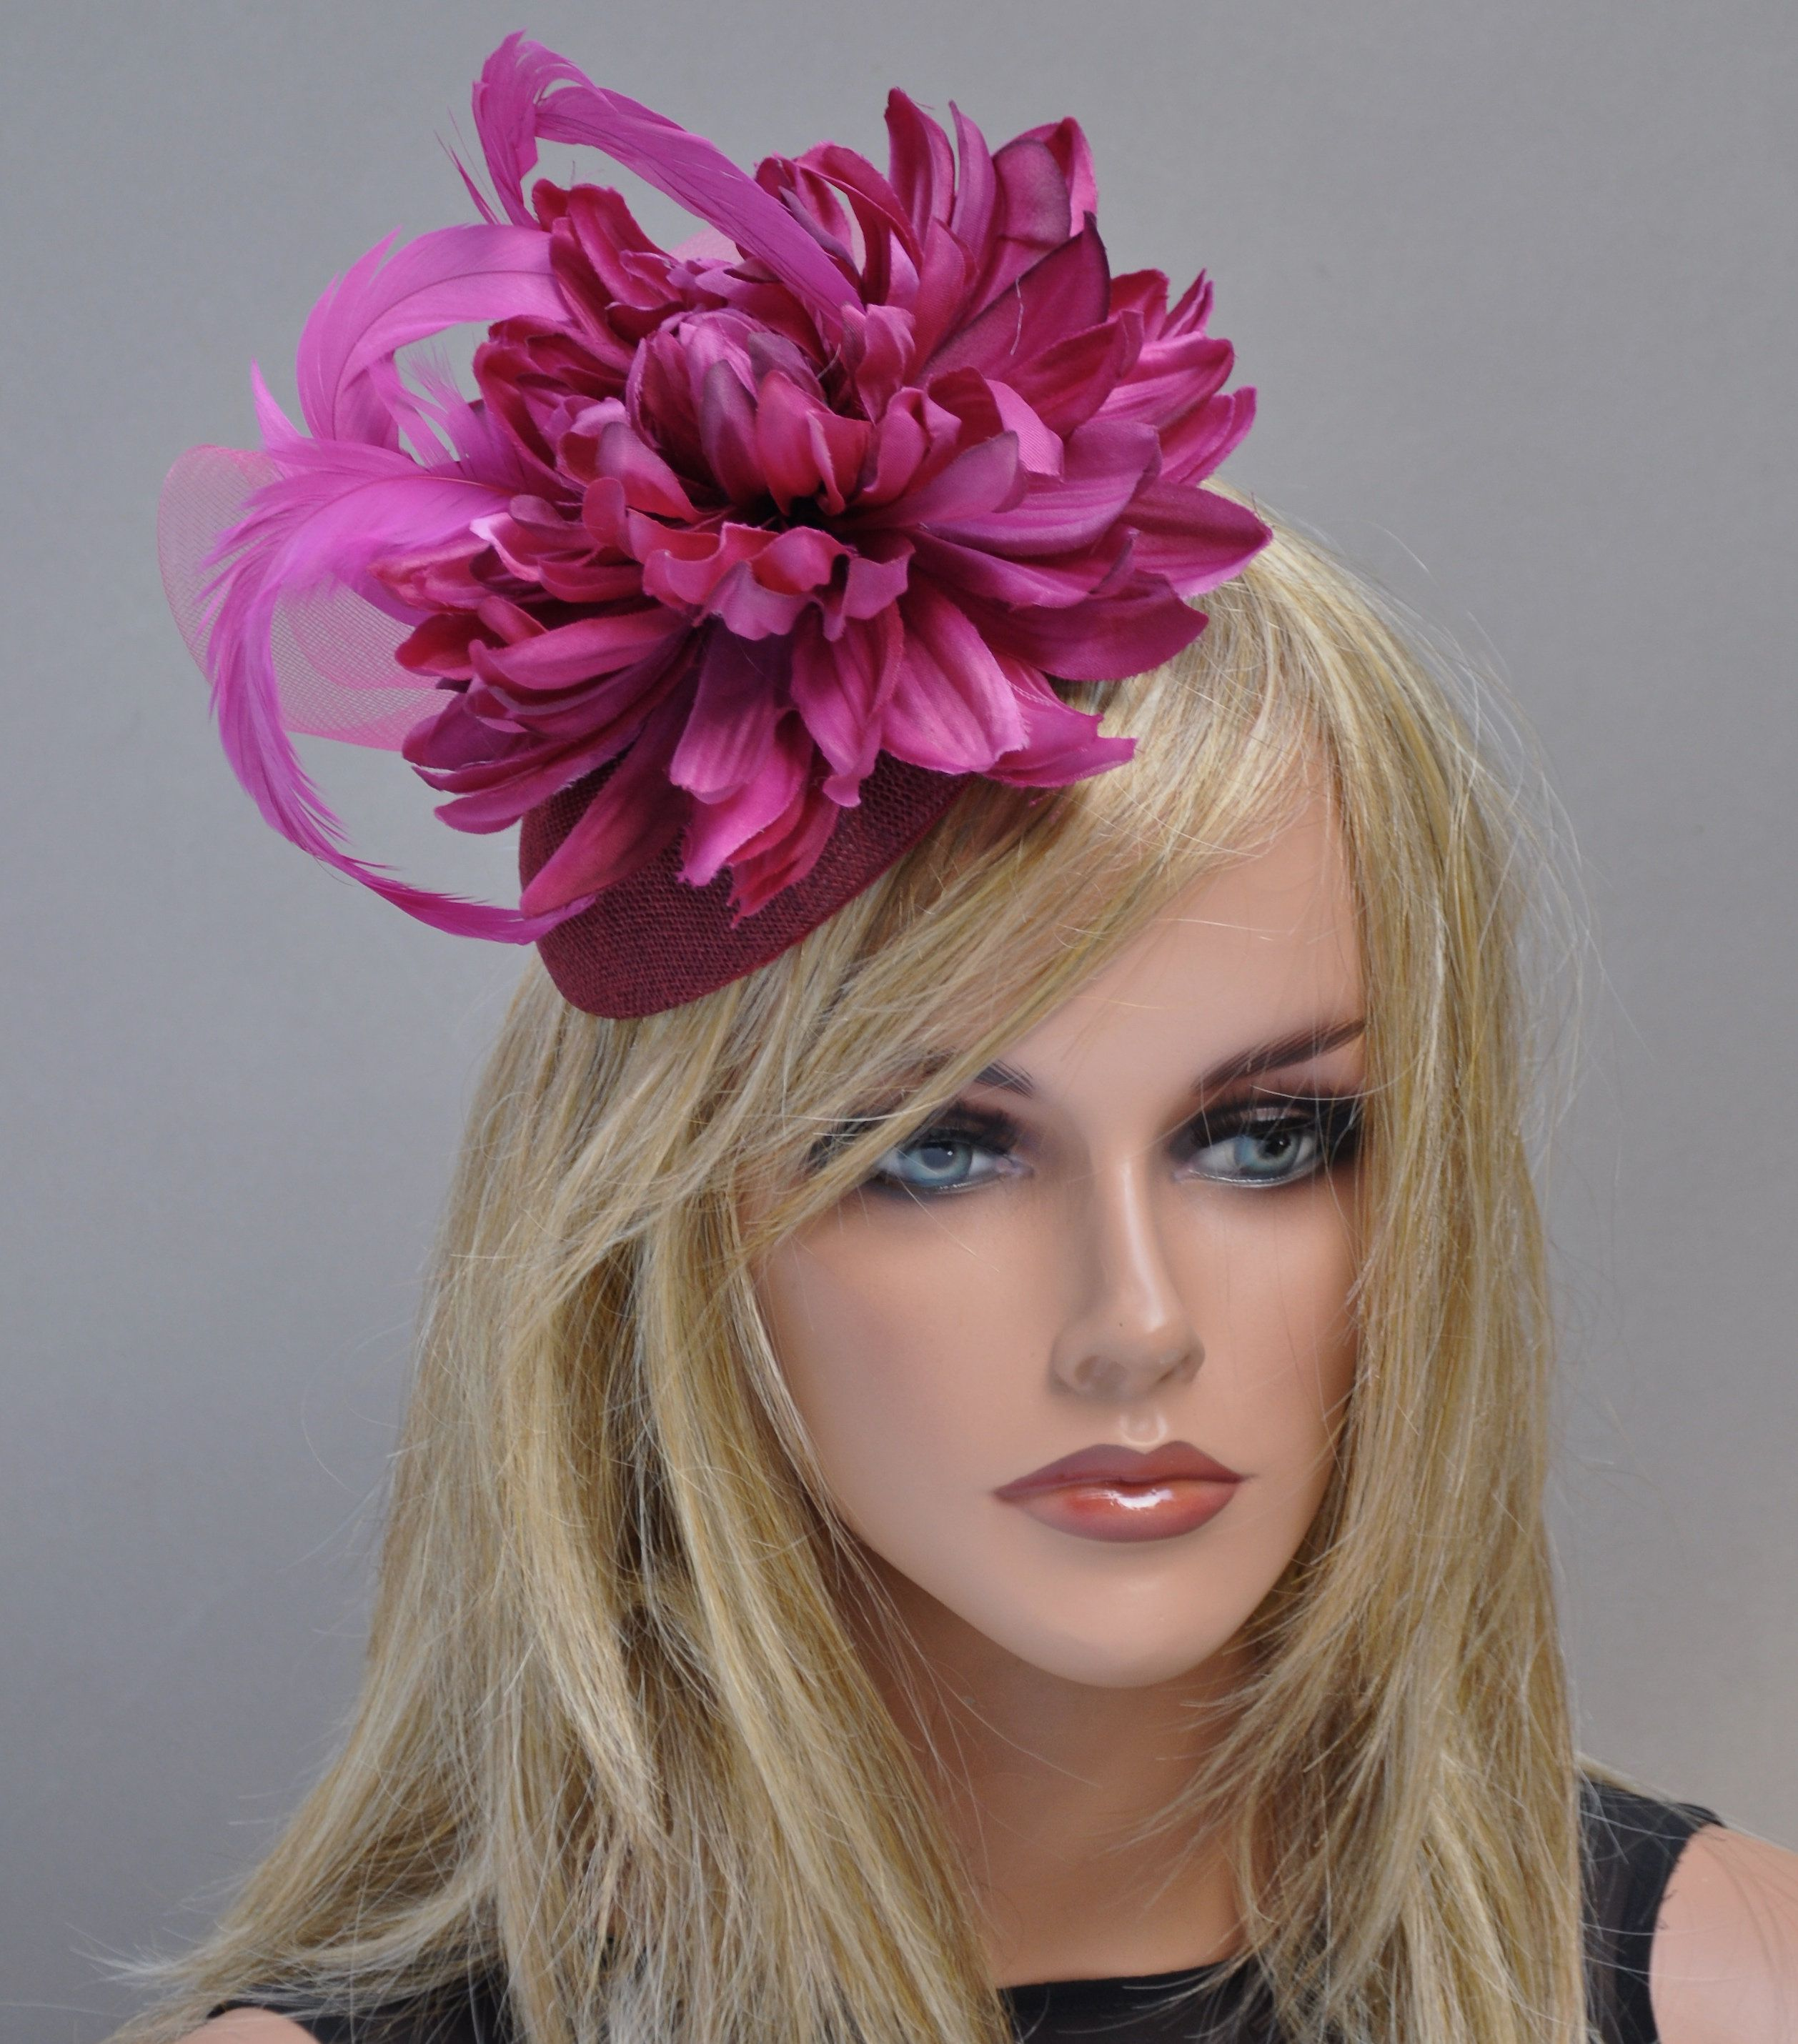 d5afe3669a3c7 AWARD MILLINERY DESIGNI made this raspberry fascinator hat headpiece in my  millinery studio in the Hollywood